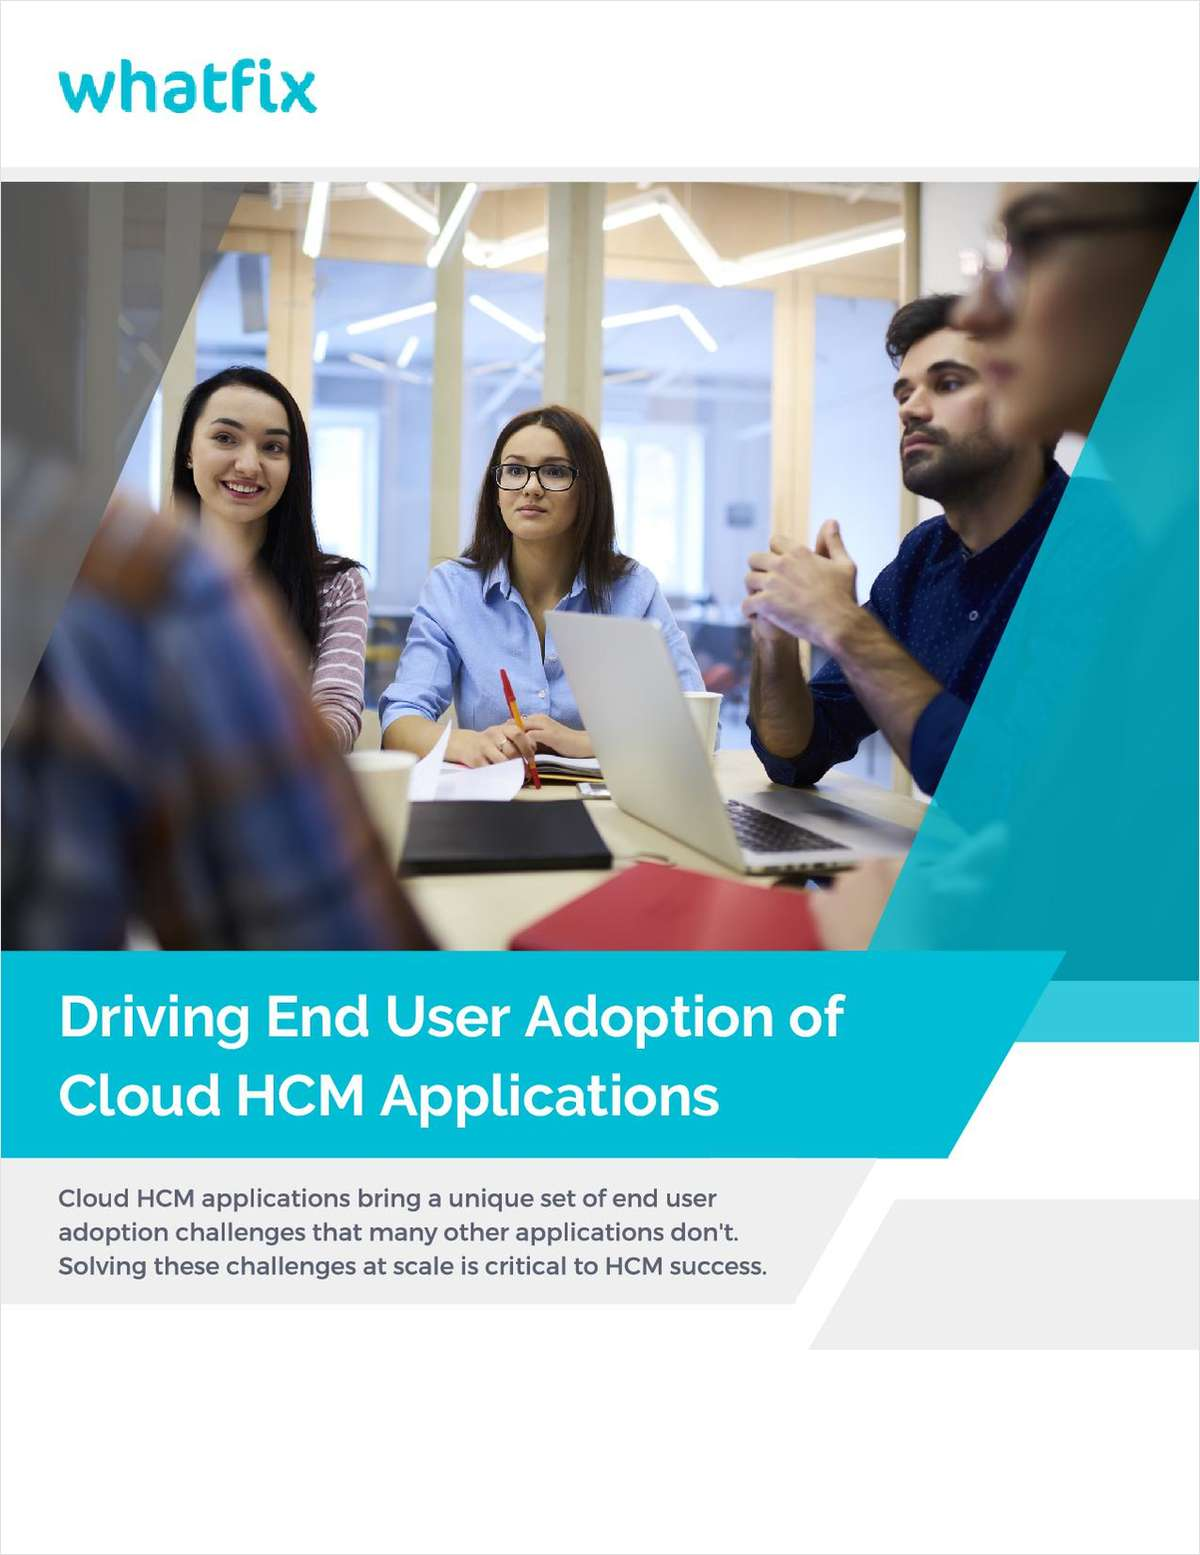 Driving End User Adoption of Cloud HCM Applications